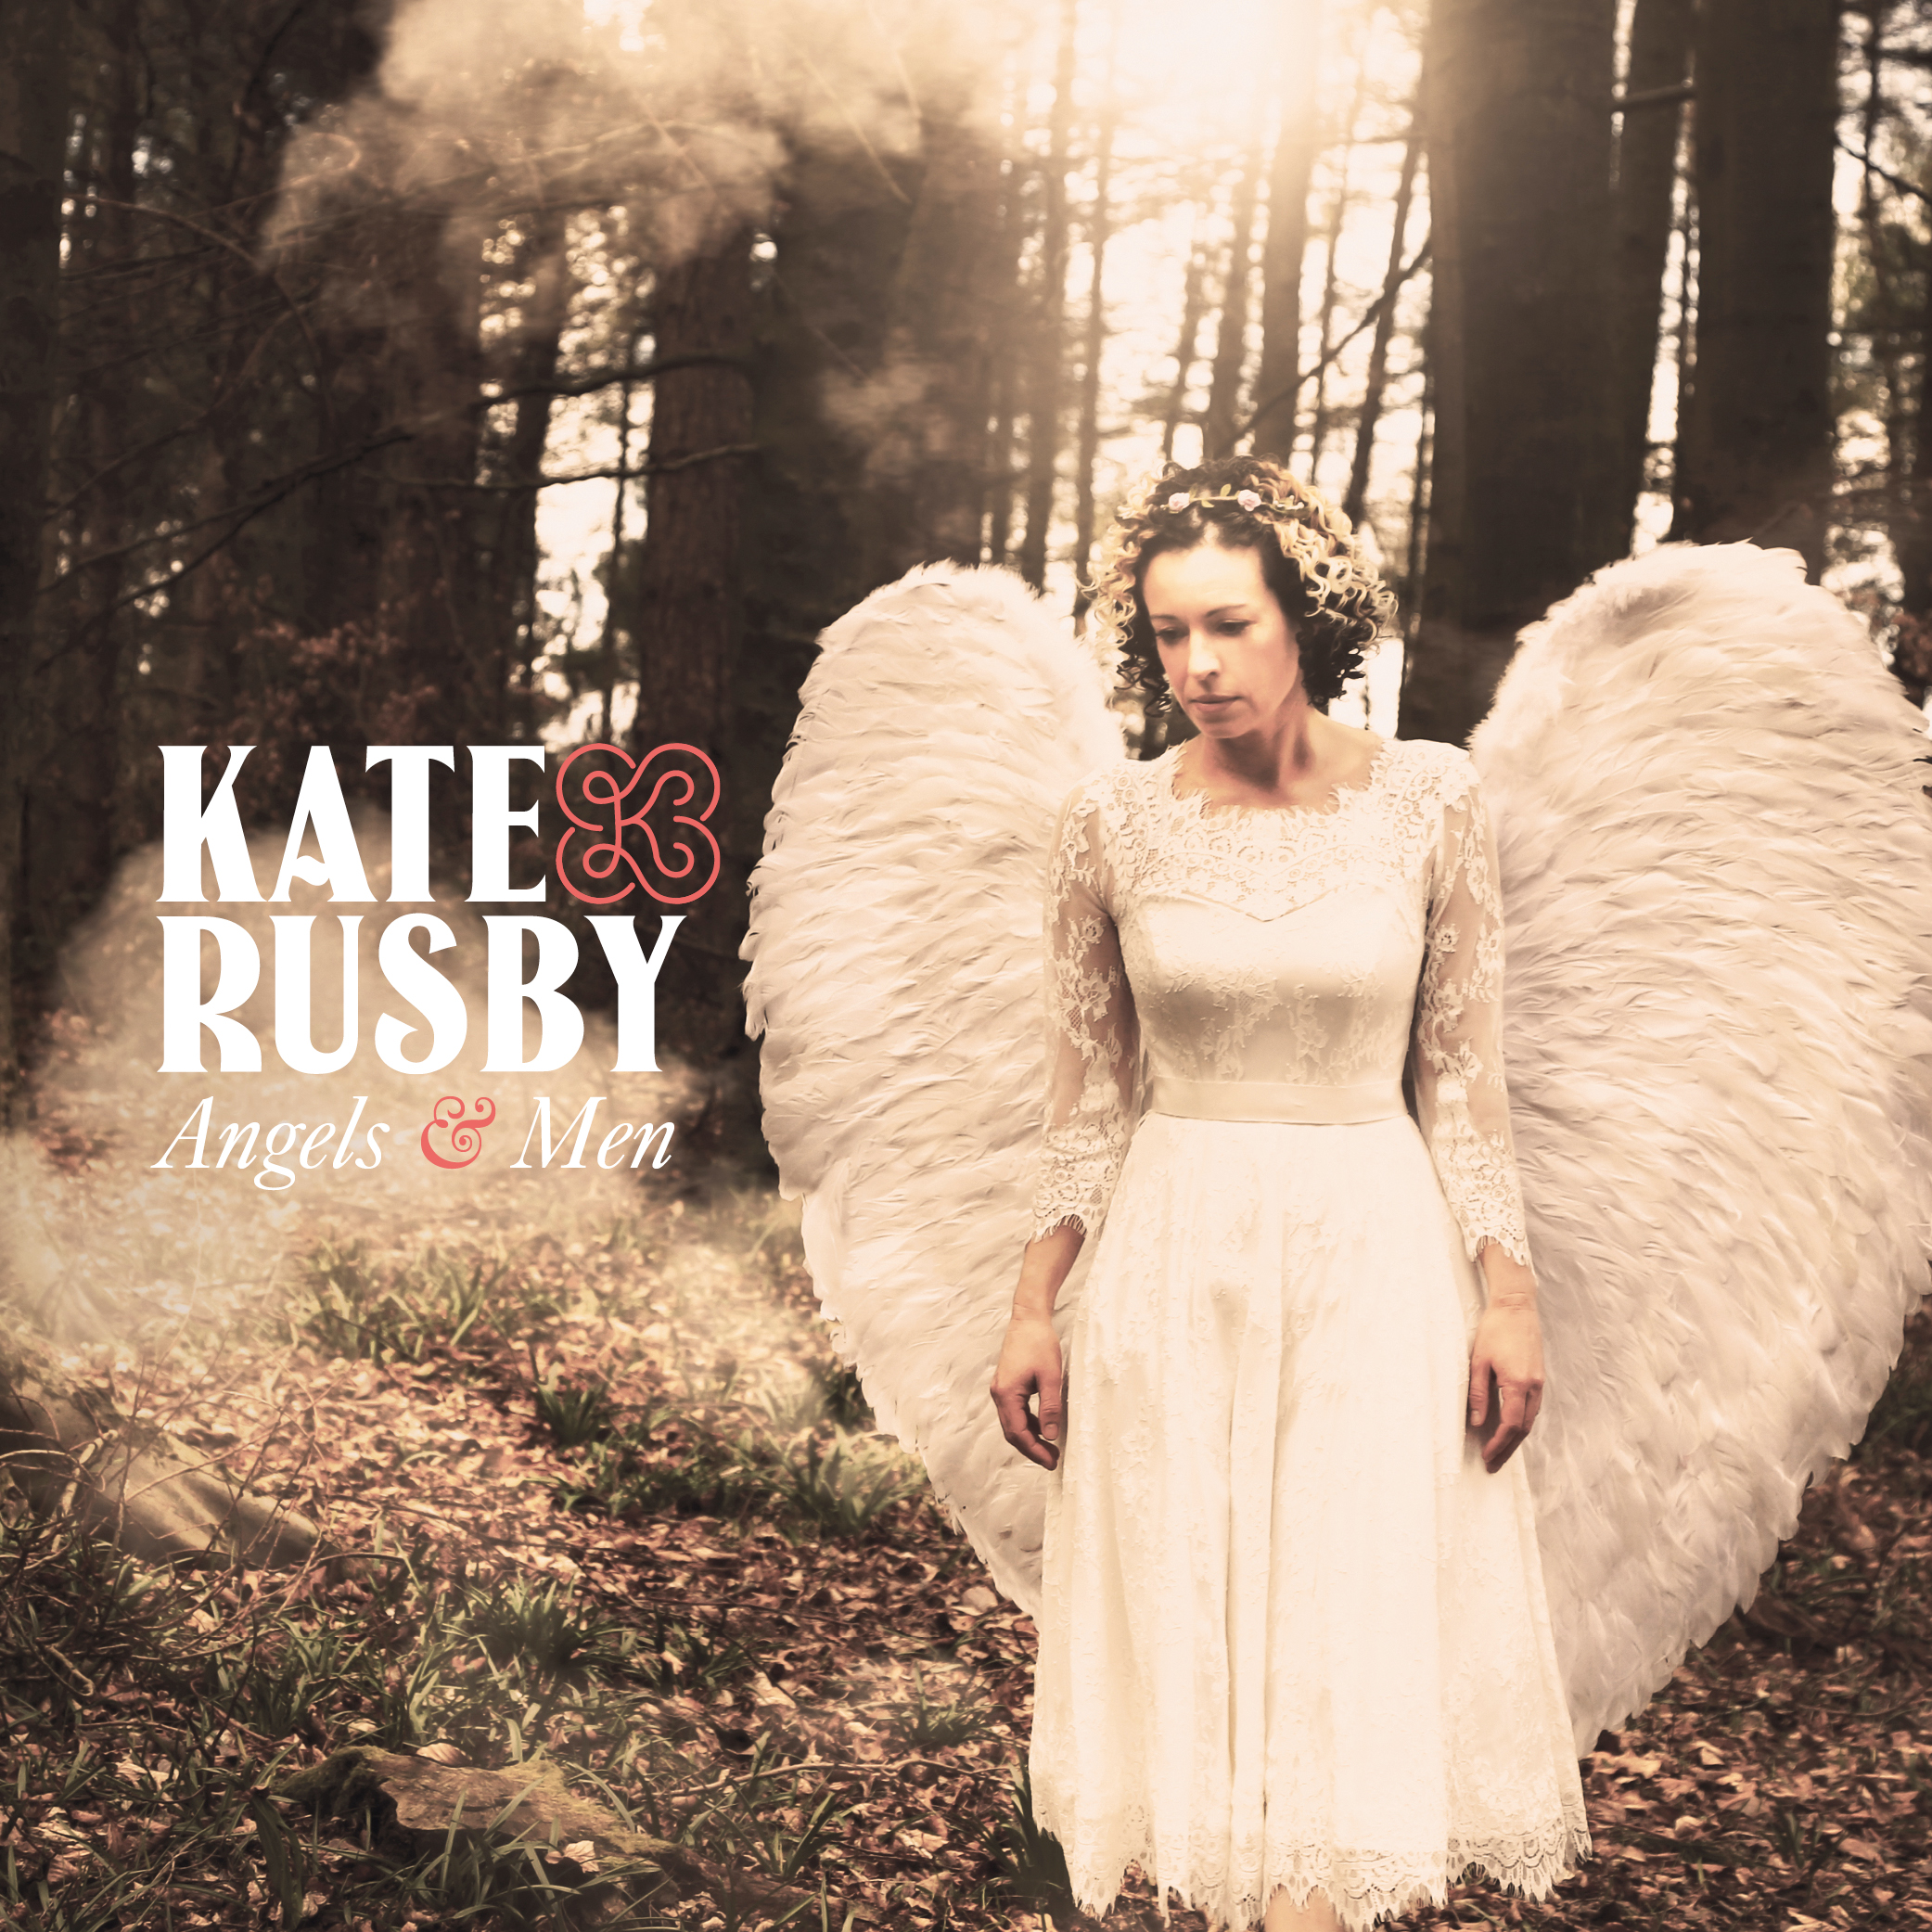 Kate Rusby's album cover for Angels & Men